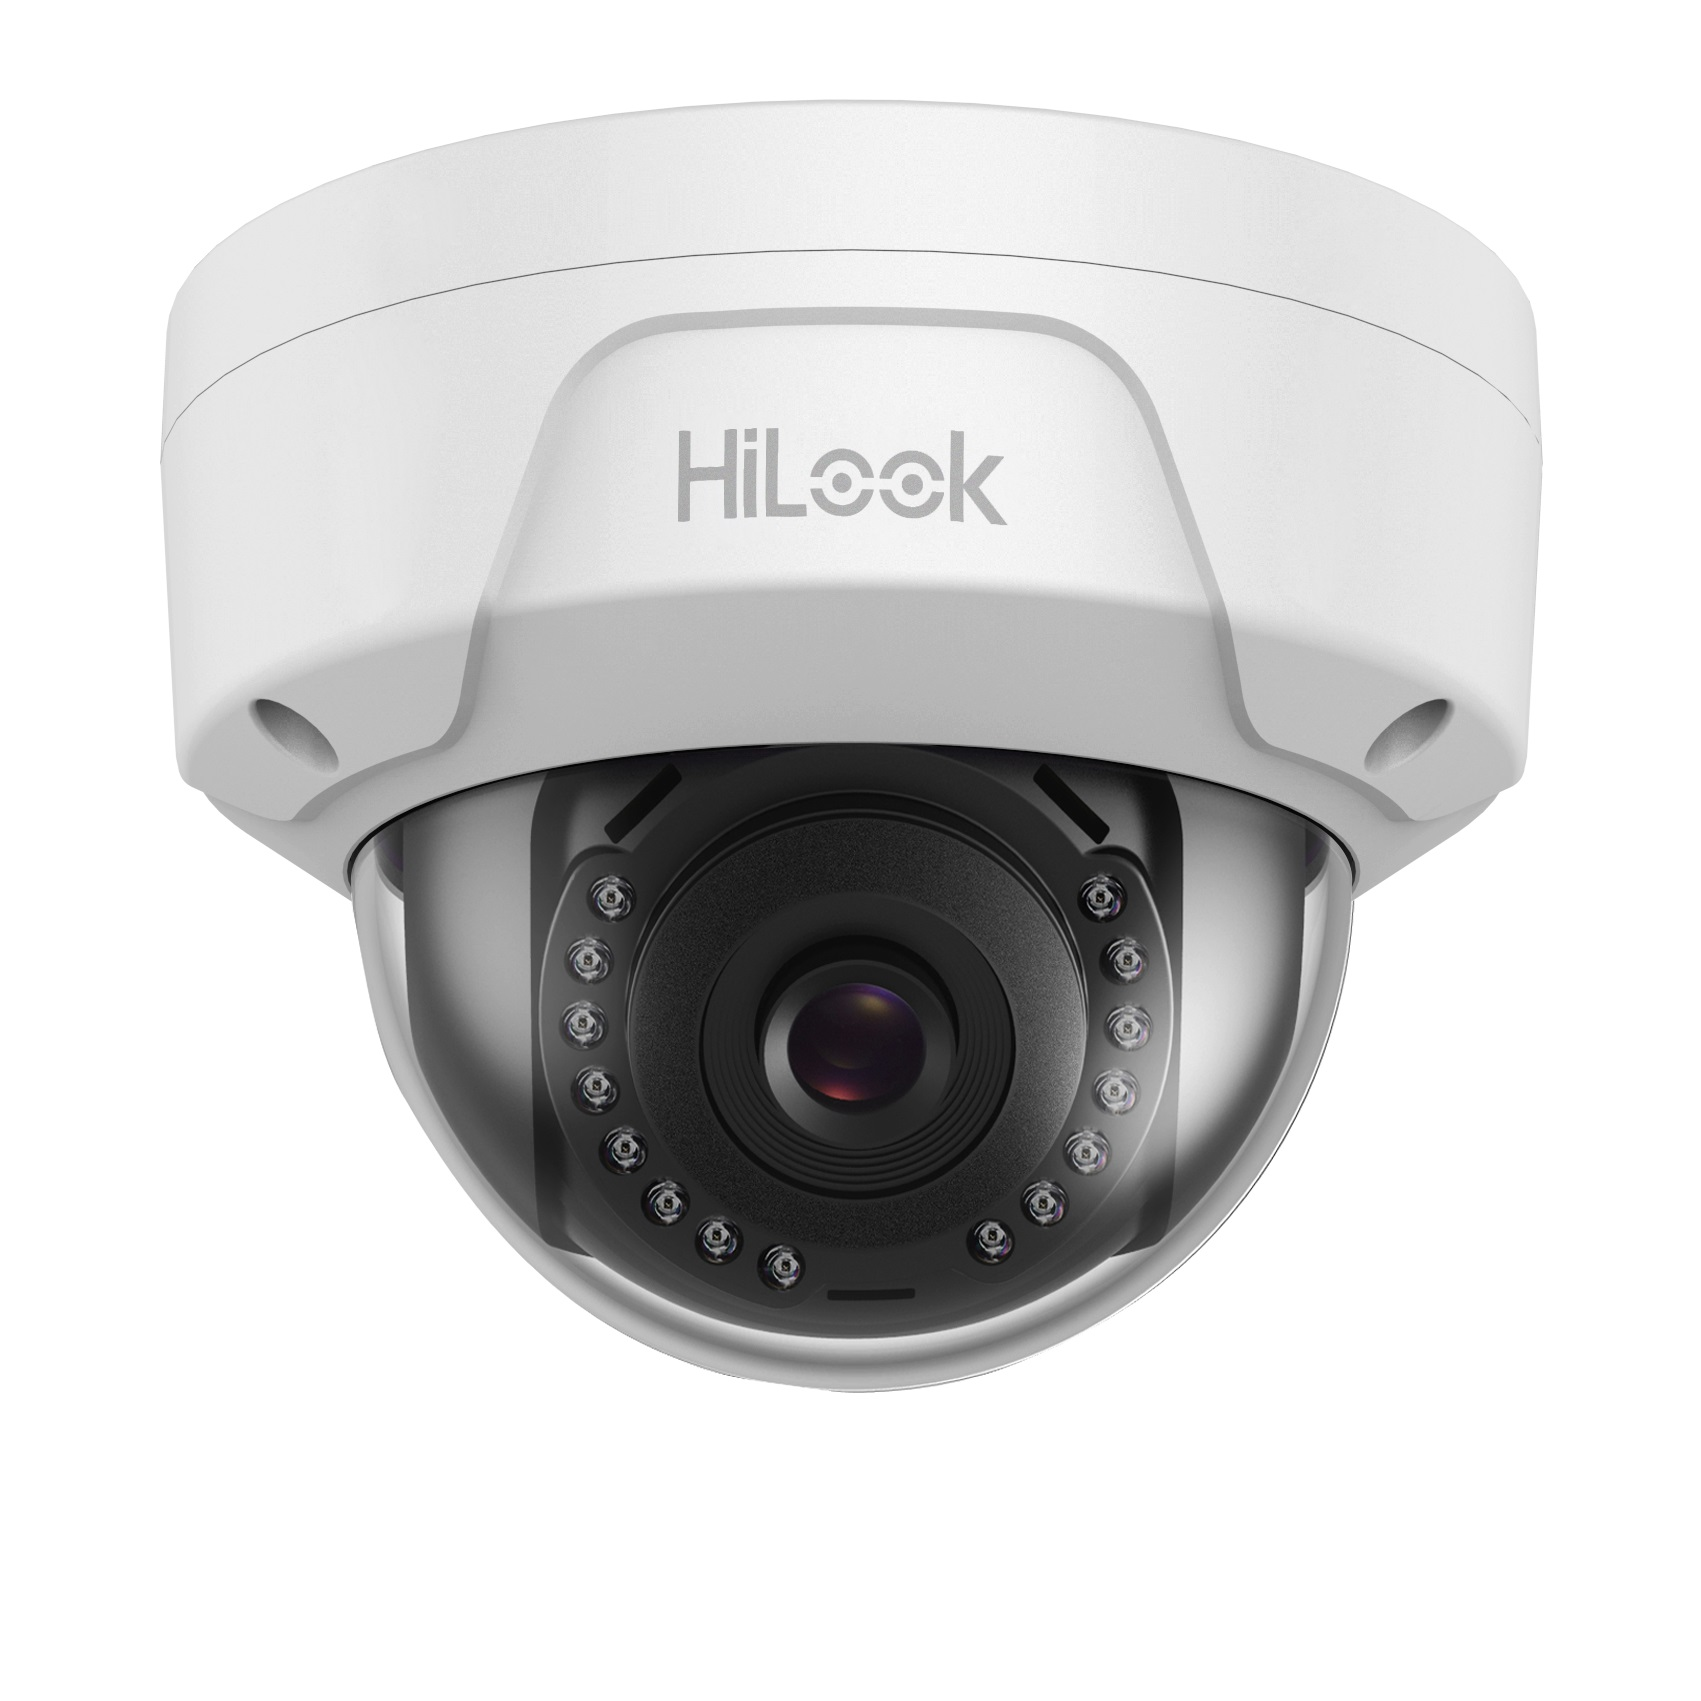 HiLook By Hikvision IPC-D140H-M 4mm Lens 4MP IP PoE Dome Network Camera Vandal Proof With 30m Night Vision - White